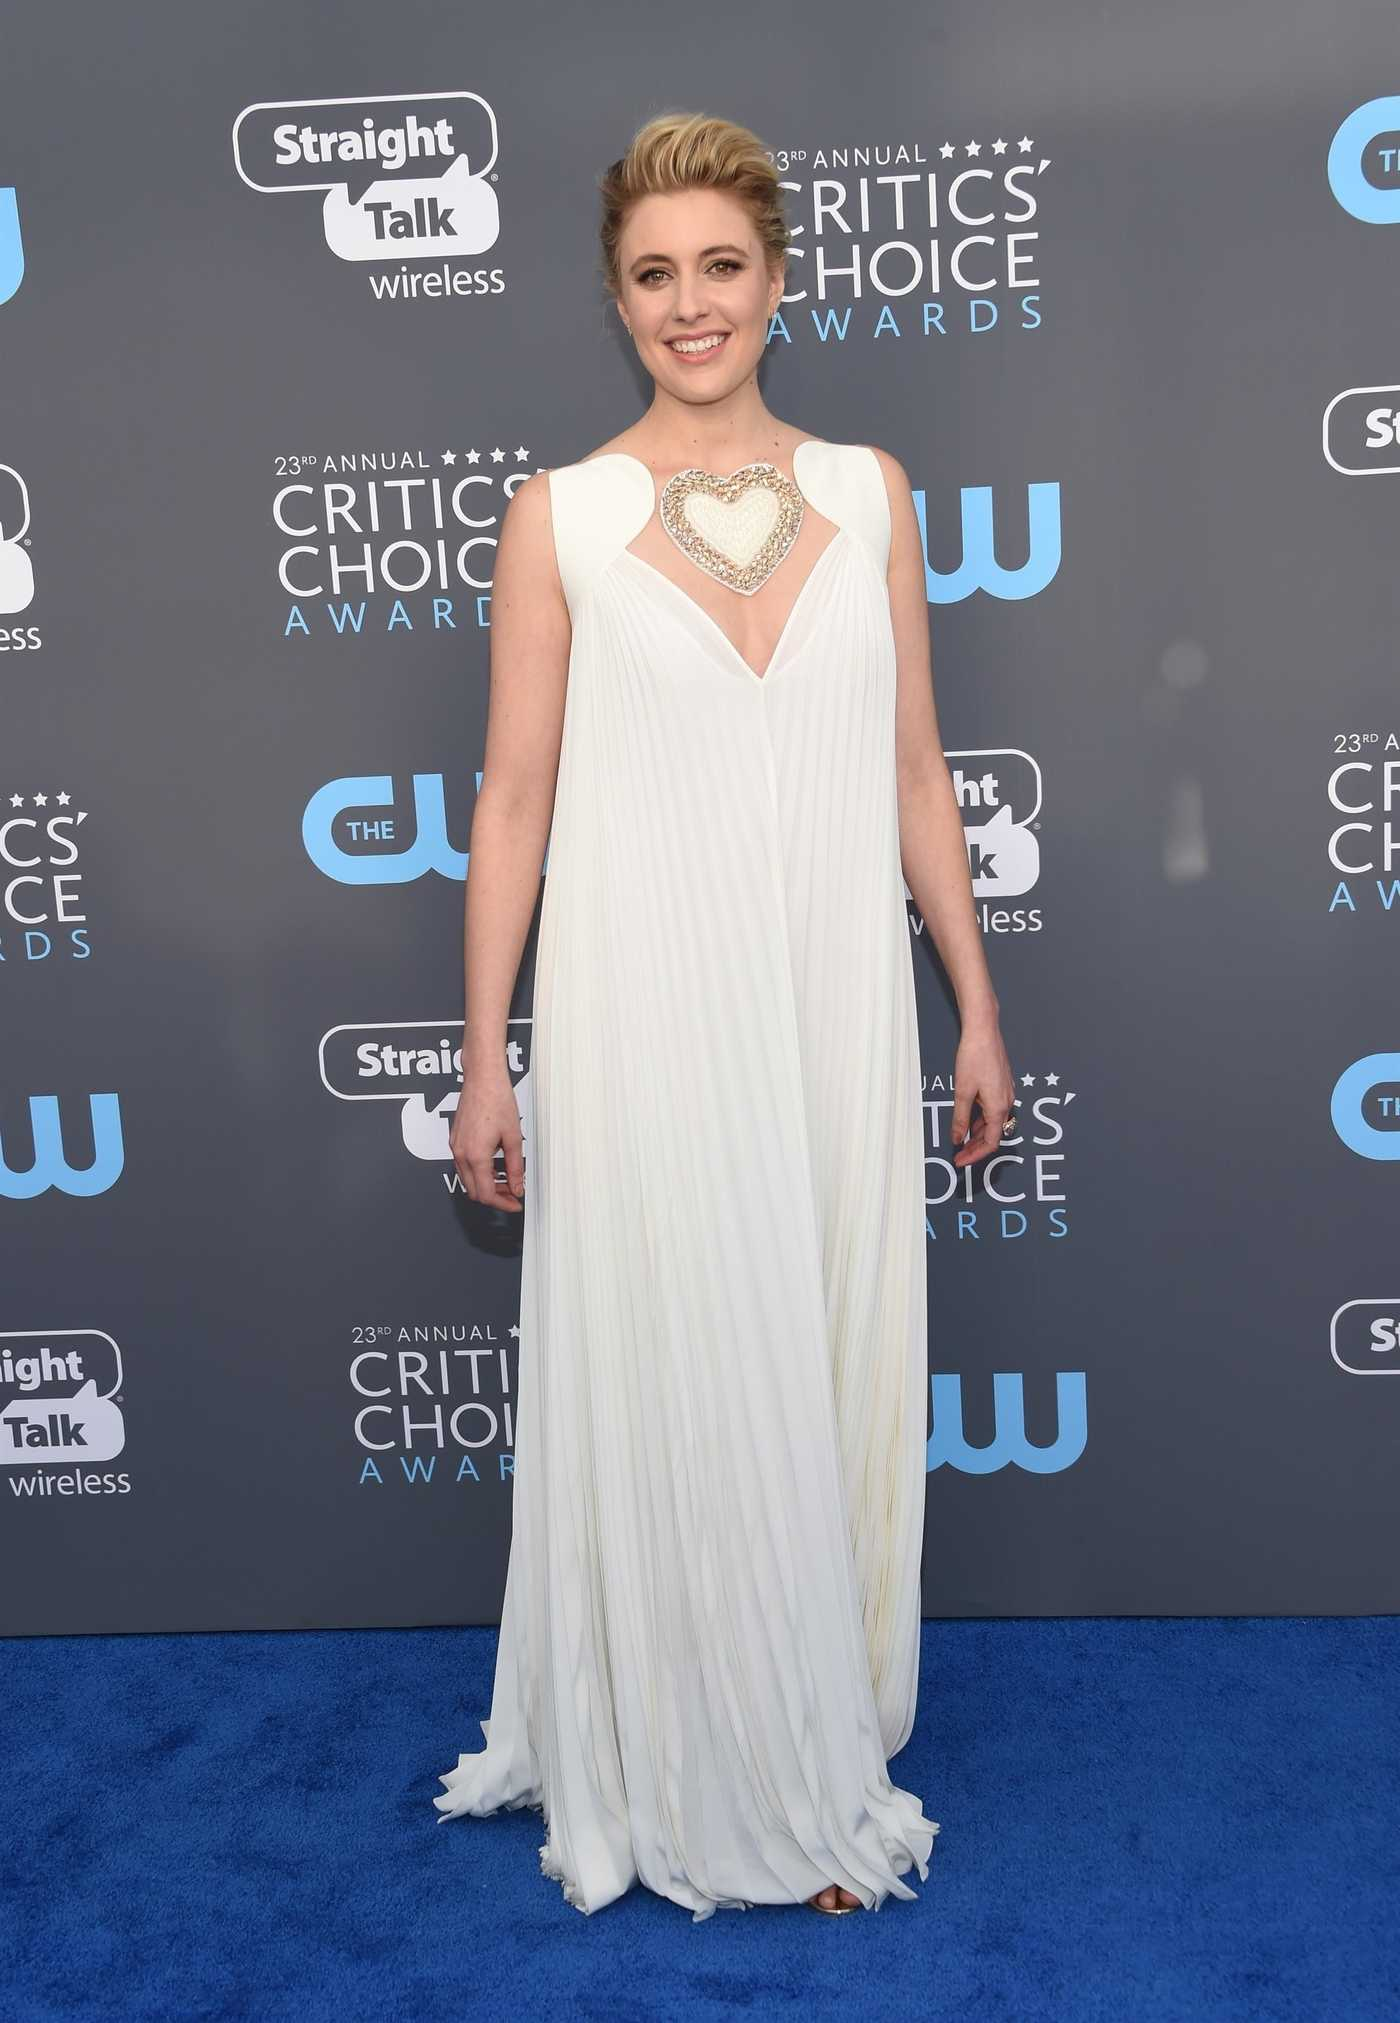 Greta Gerwig at the 23rd Annual Critics' Choice Awards in Santa Monica 01/11/2018